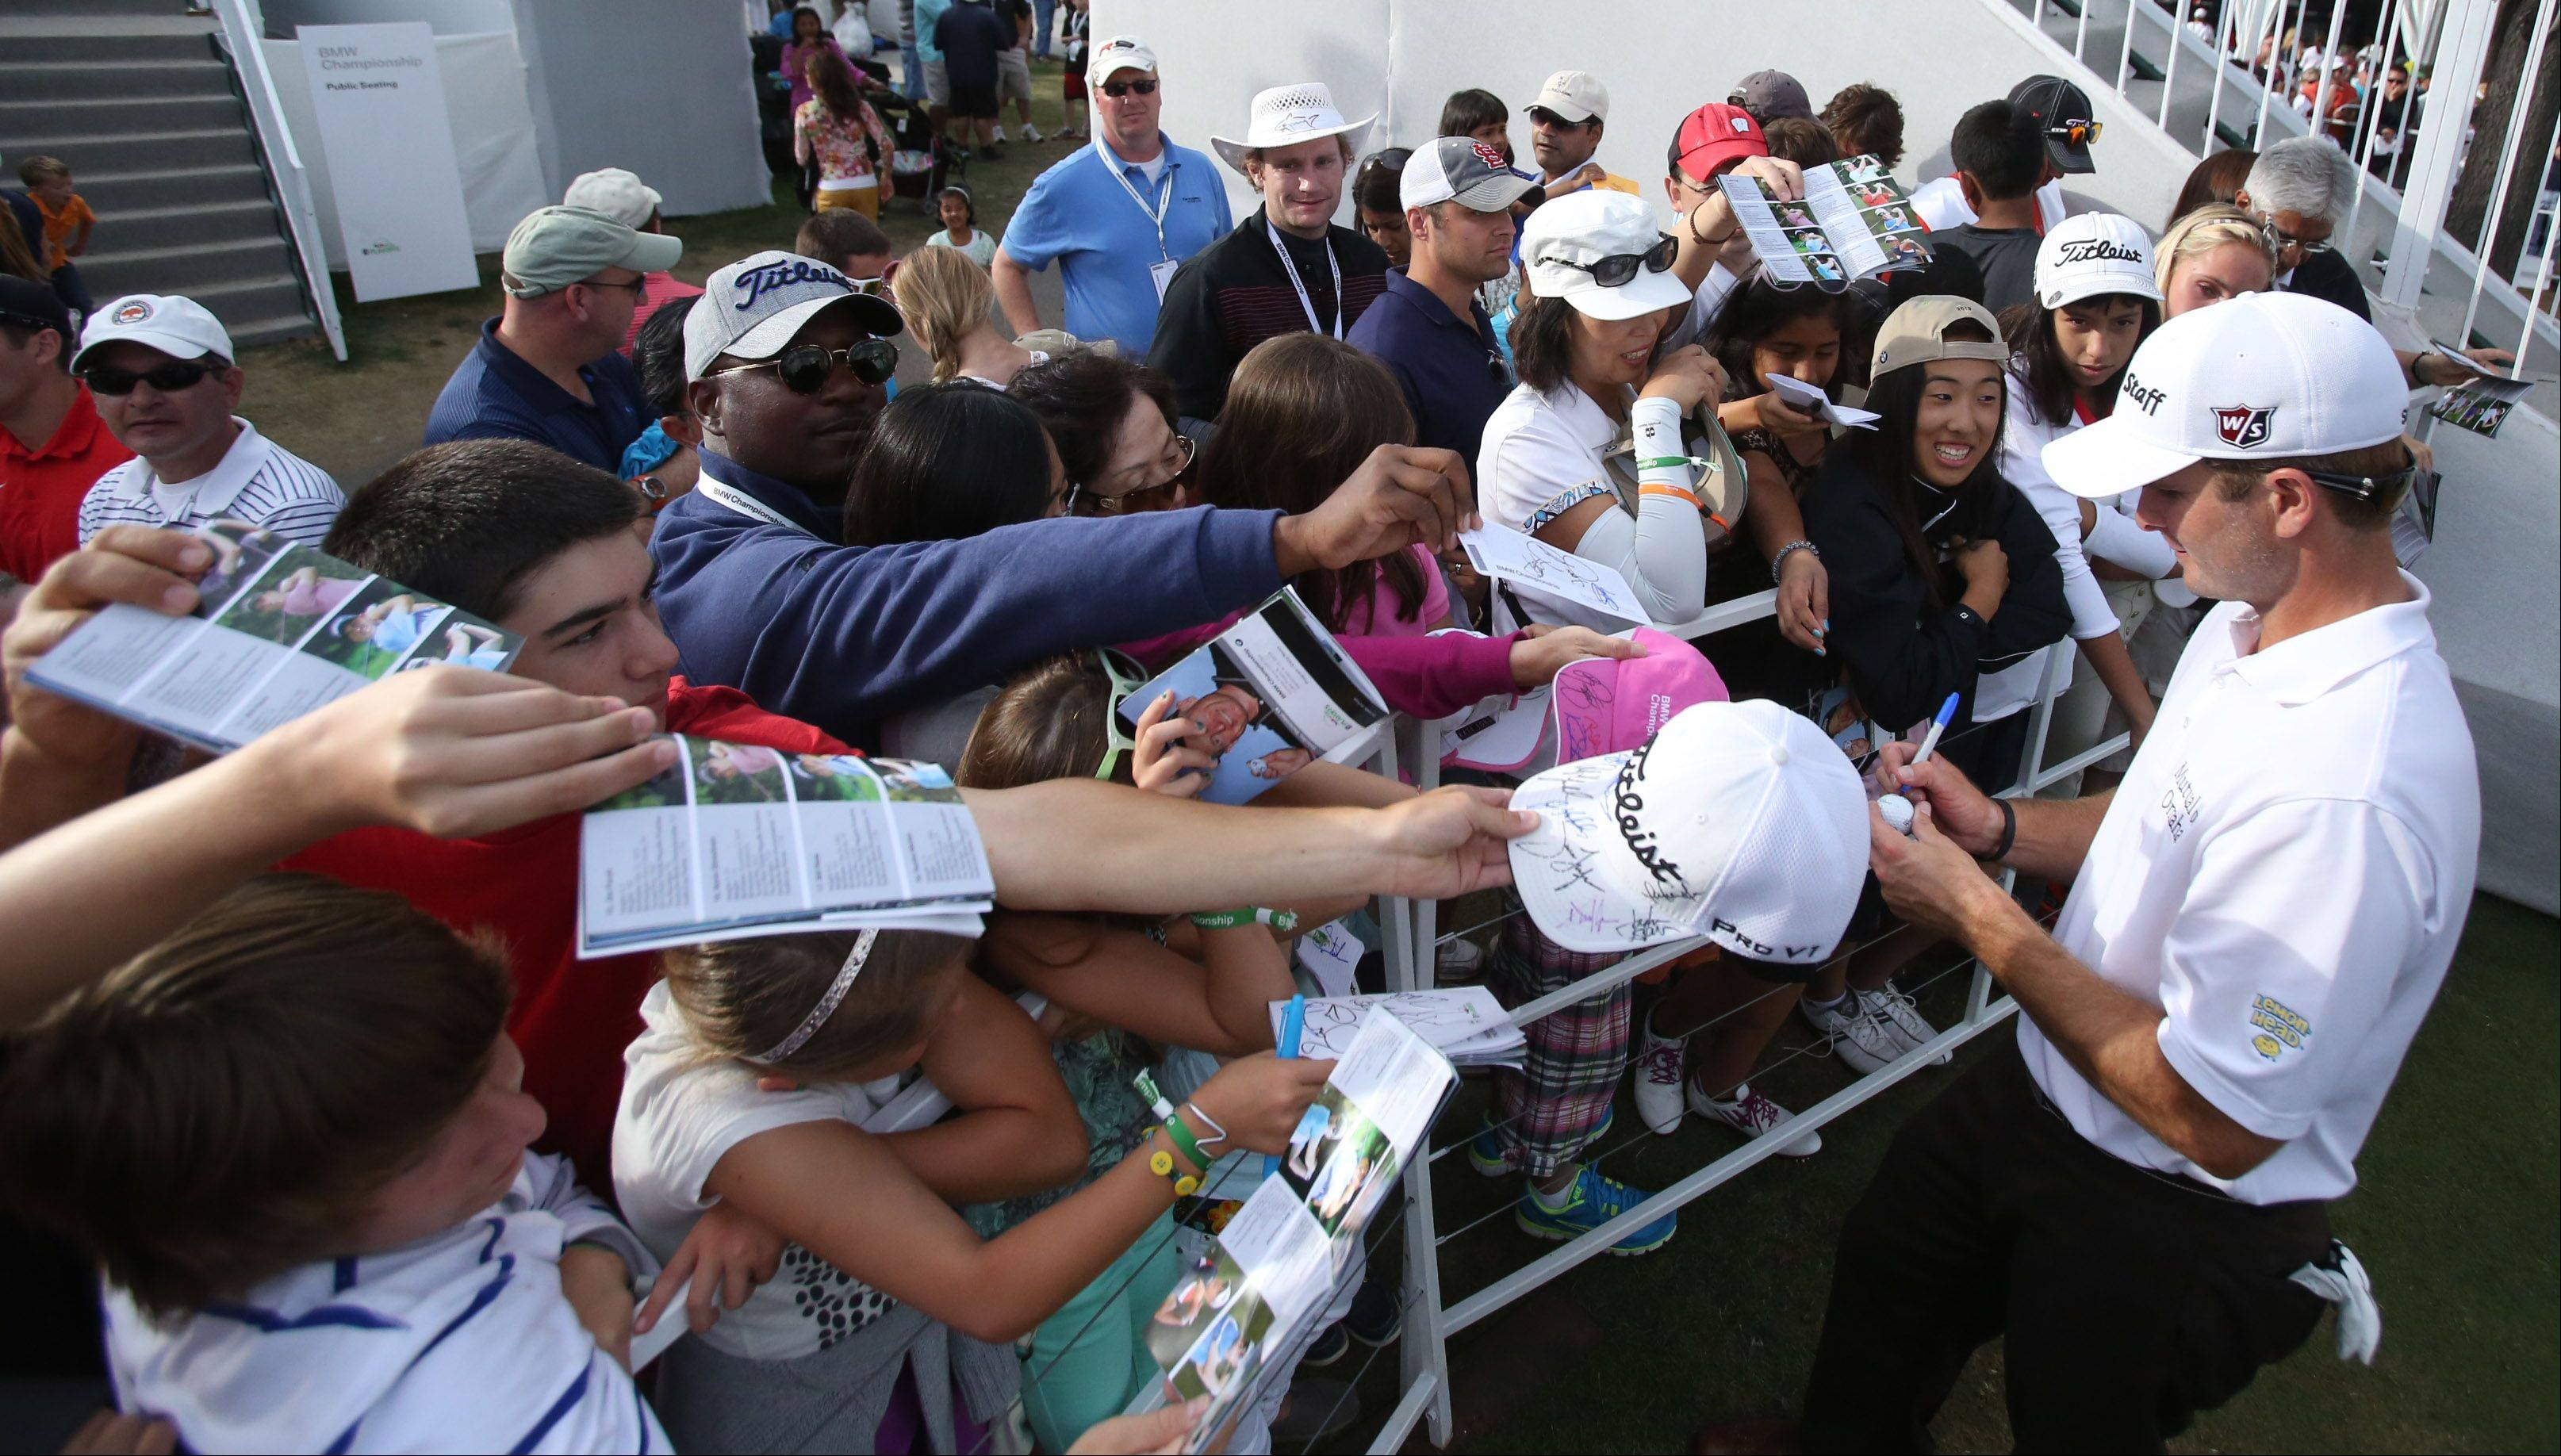 Kevin Streelman signs autographs after playing 18 holes in the third-round of the BMW Championship at Conway Farms Golf Club in Lake Forest on Friday.